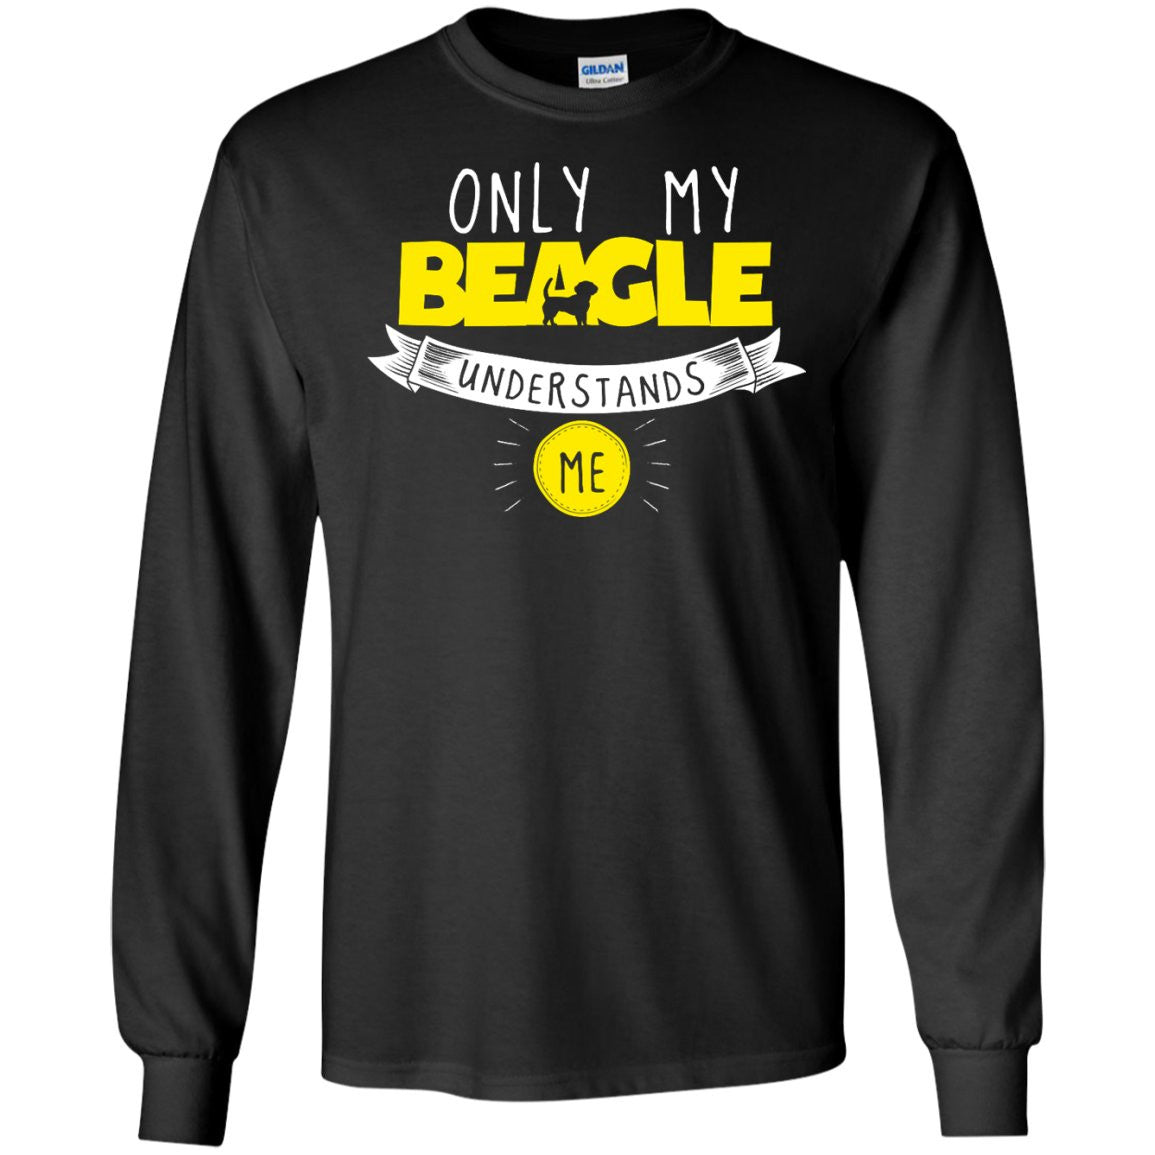 Beagle - Only My Beagle Understands Me Yellow - LS Ultra Cotton Tshirt